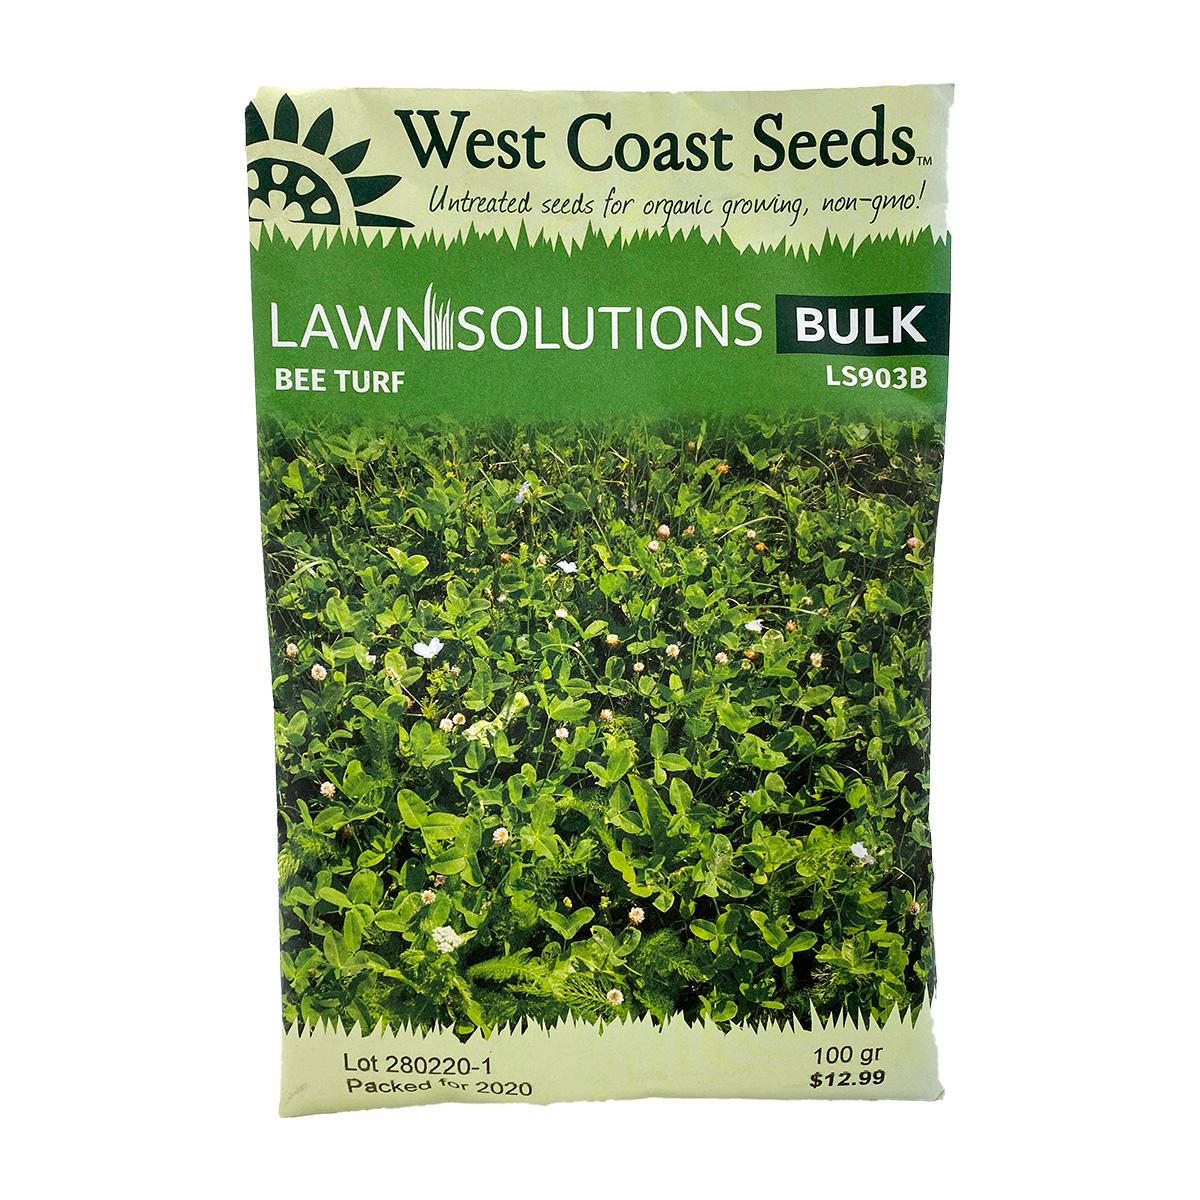 Lawn Solutions Bulk Bee Turf 100g